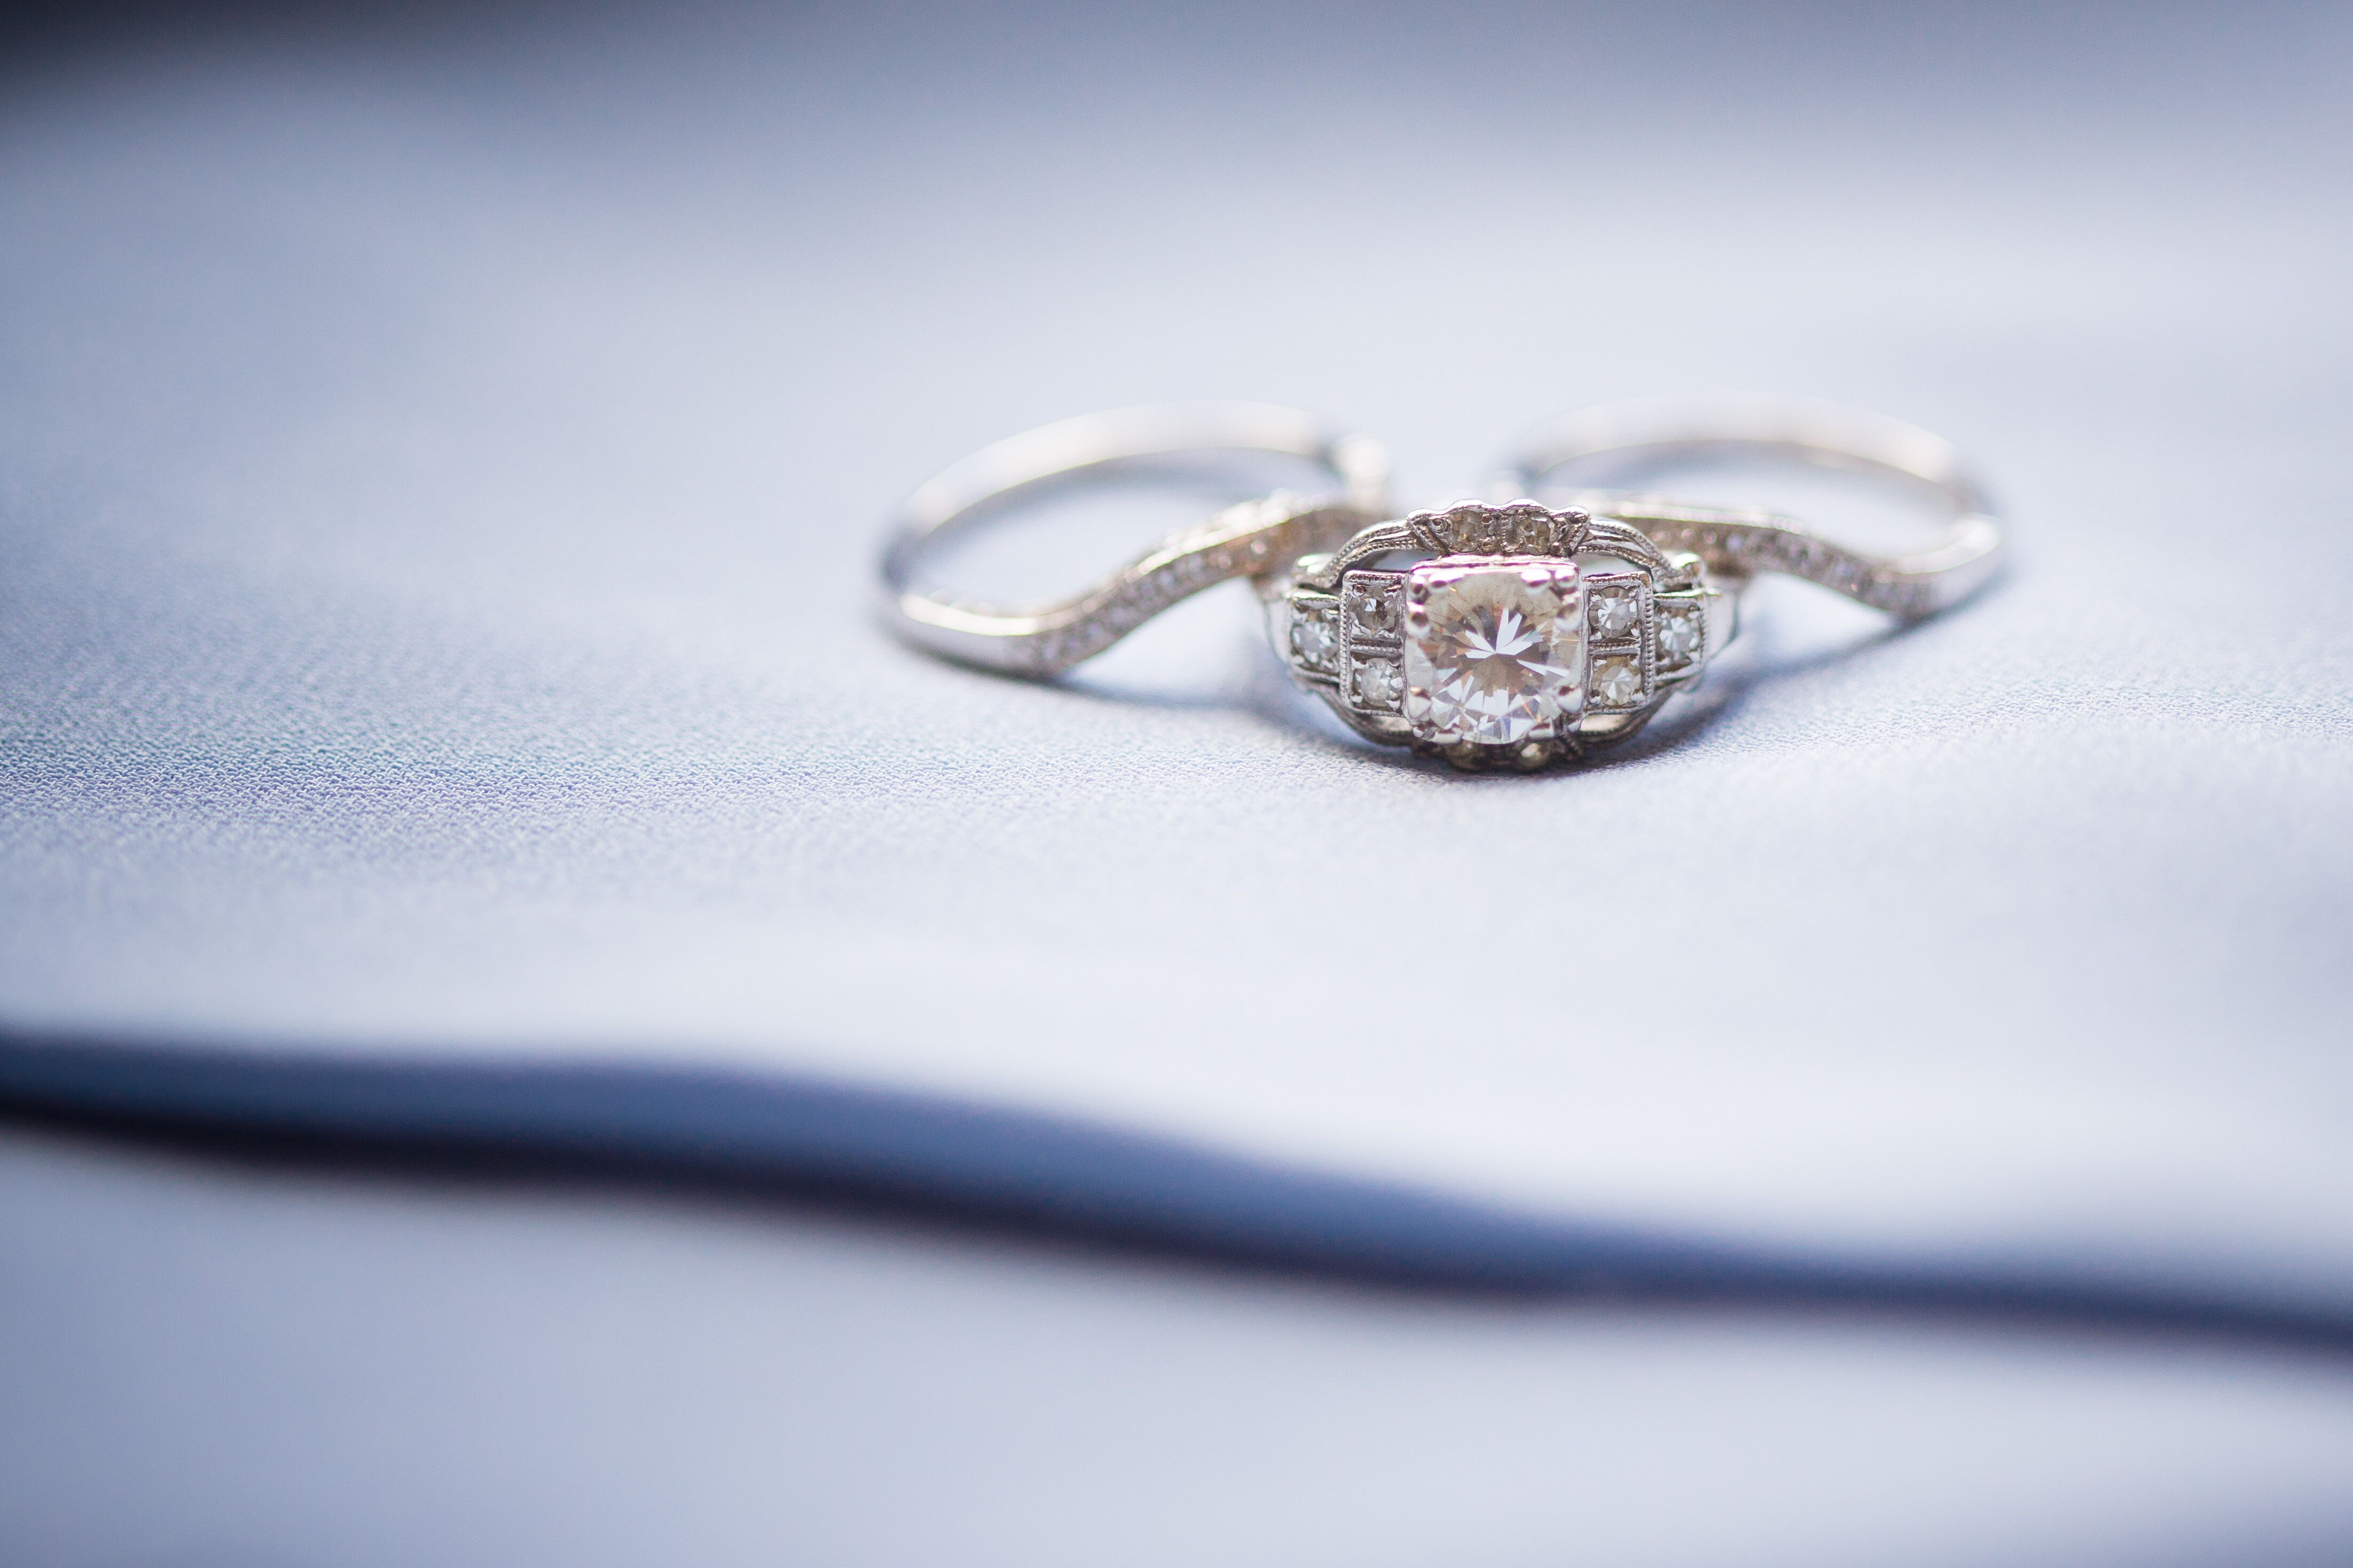 Ornate Round Cut Diamond Engagement Ring in Square Setting